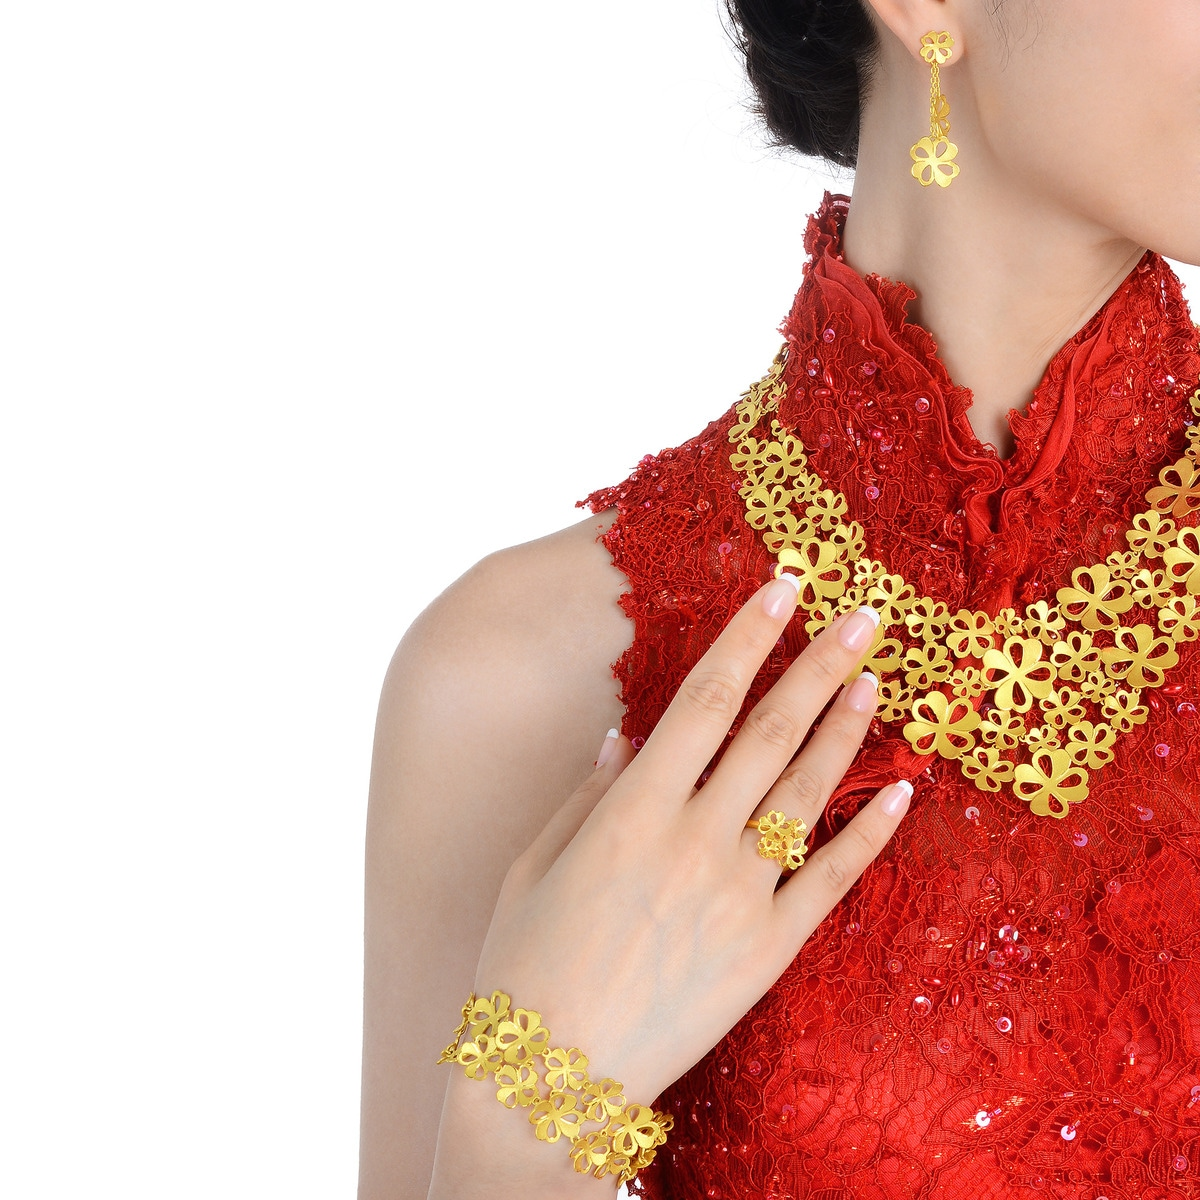 Fashion Jewelry Wholesale Cheap Online From China Jewelry 93